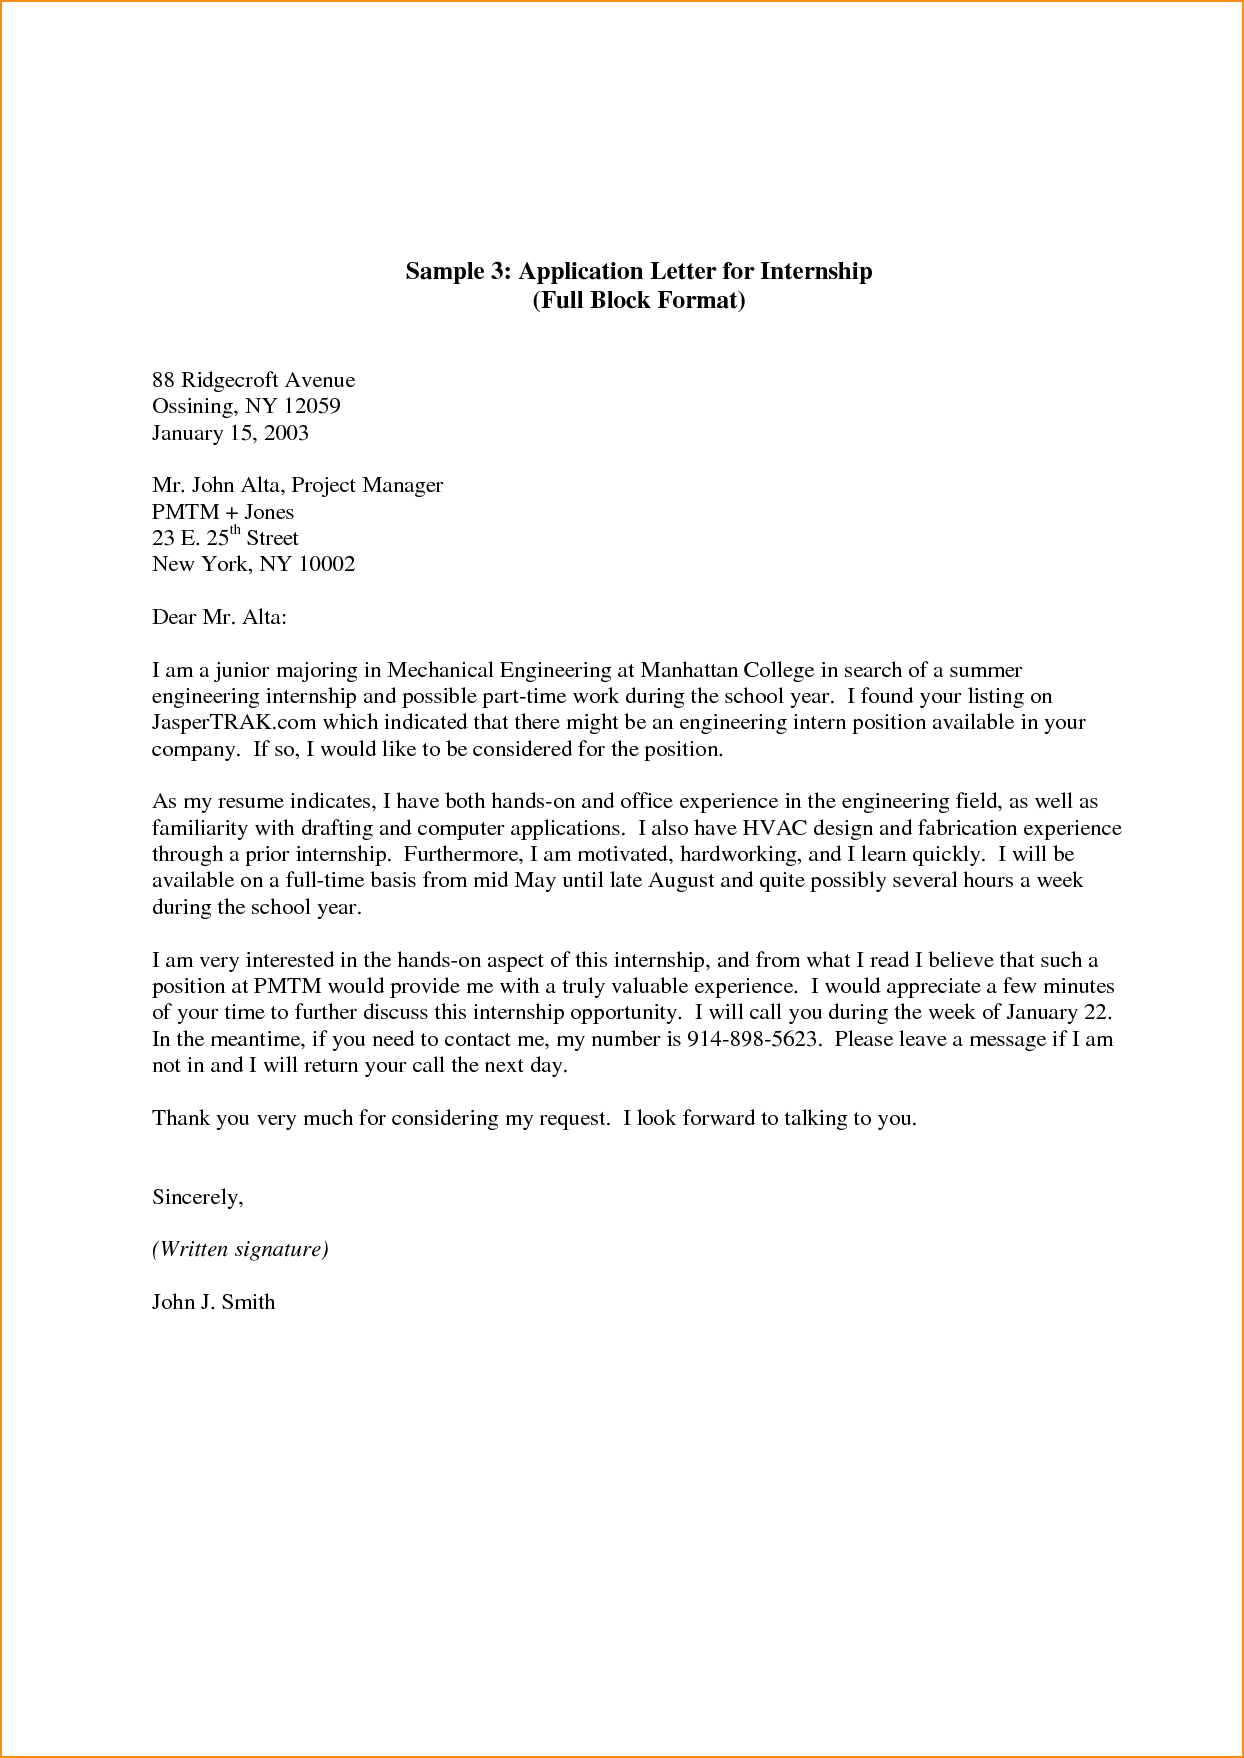 Simple resignation letter format sample internship application simple resignation letter format sample internship application writing your use these samples madrichimfo Images